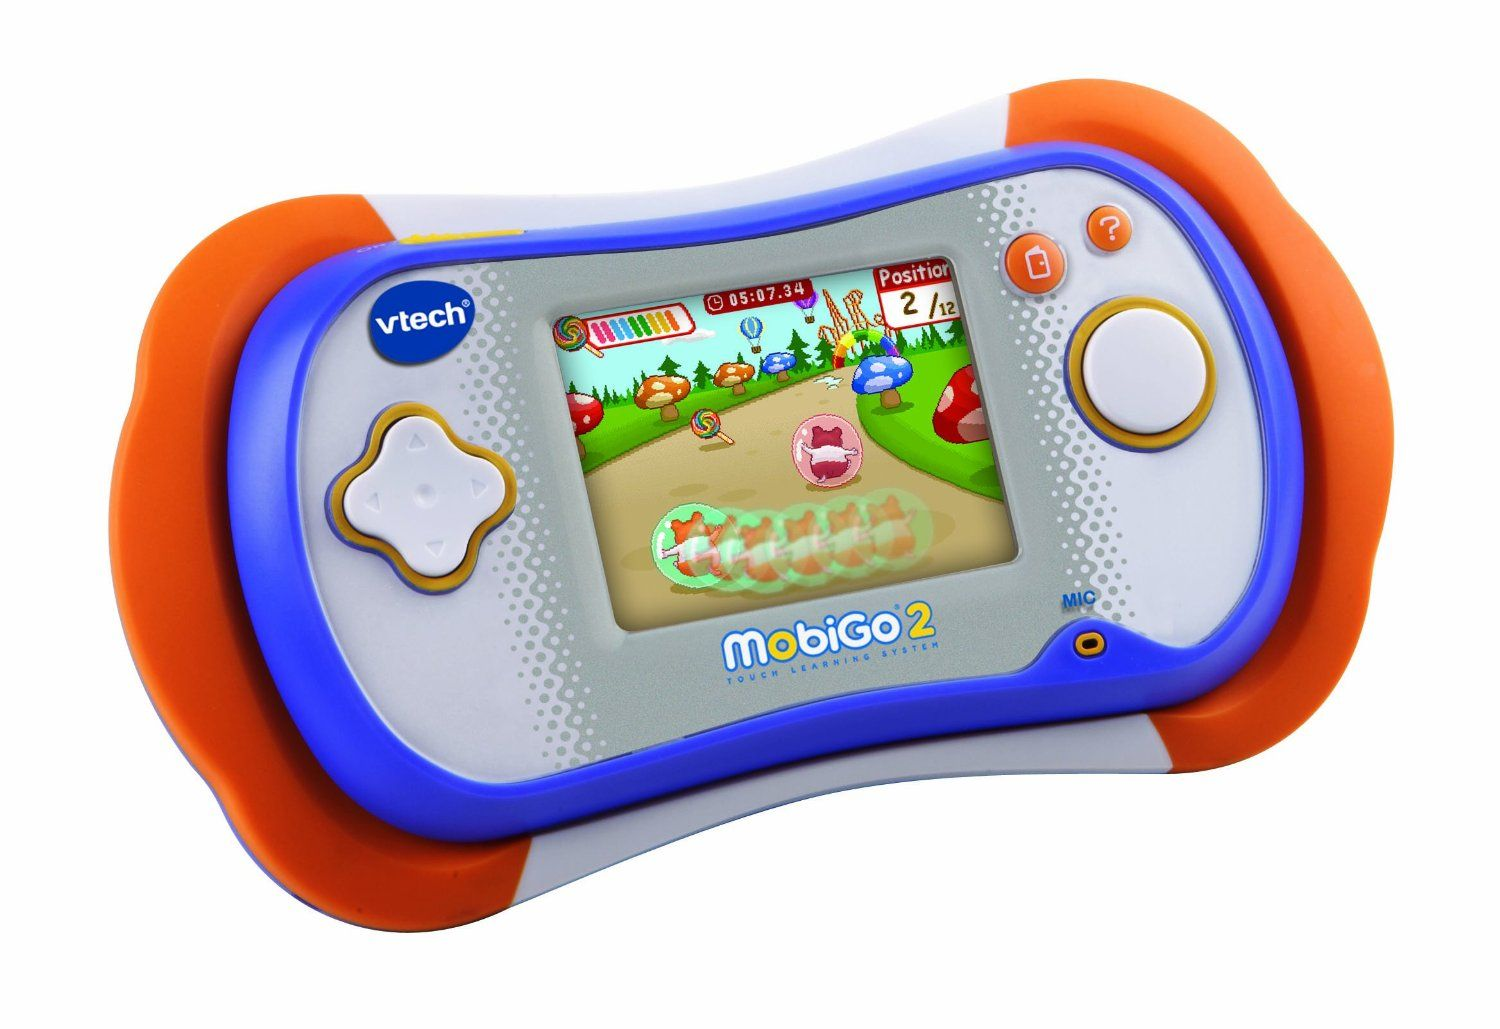 Tech Gadgets for Babies - VTech MobiGo 2 Touch Learning ...